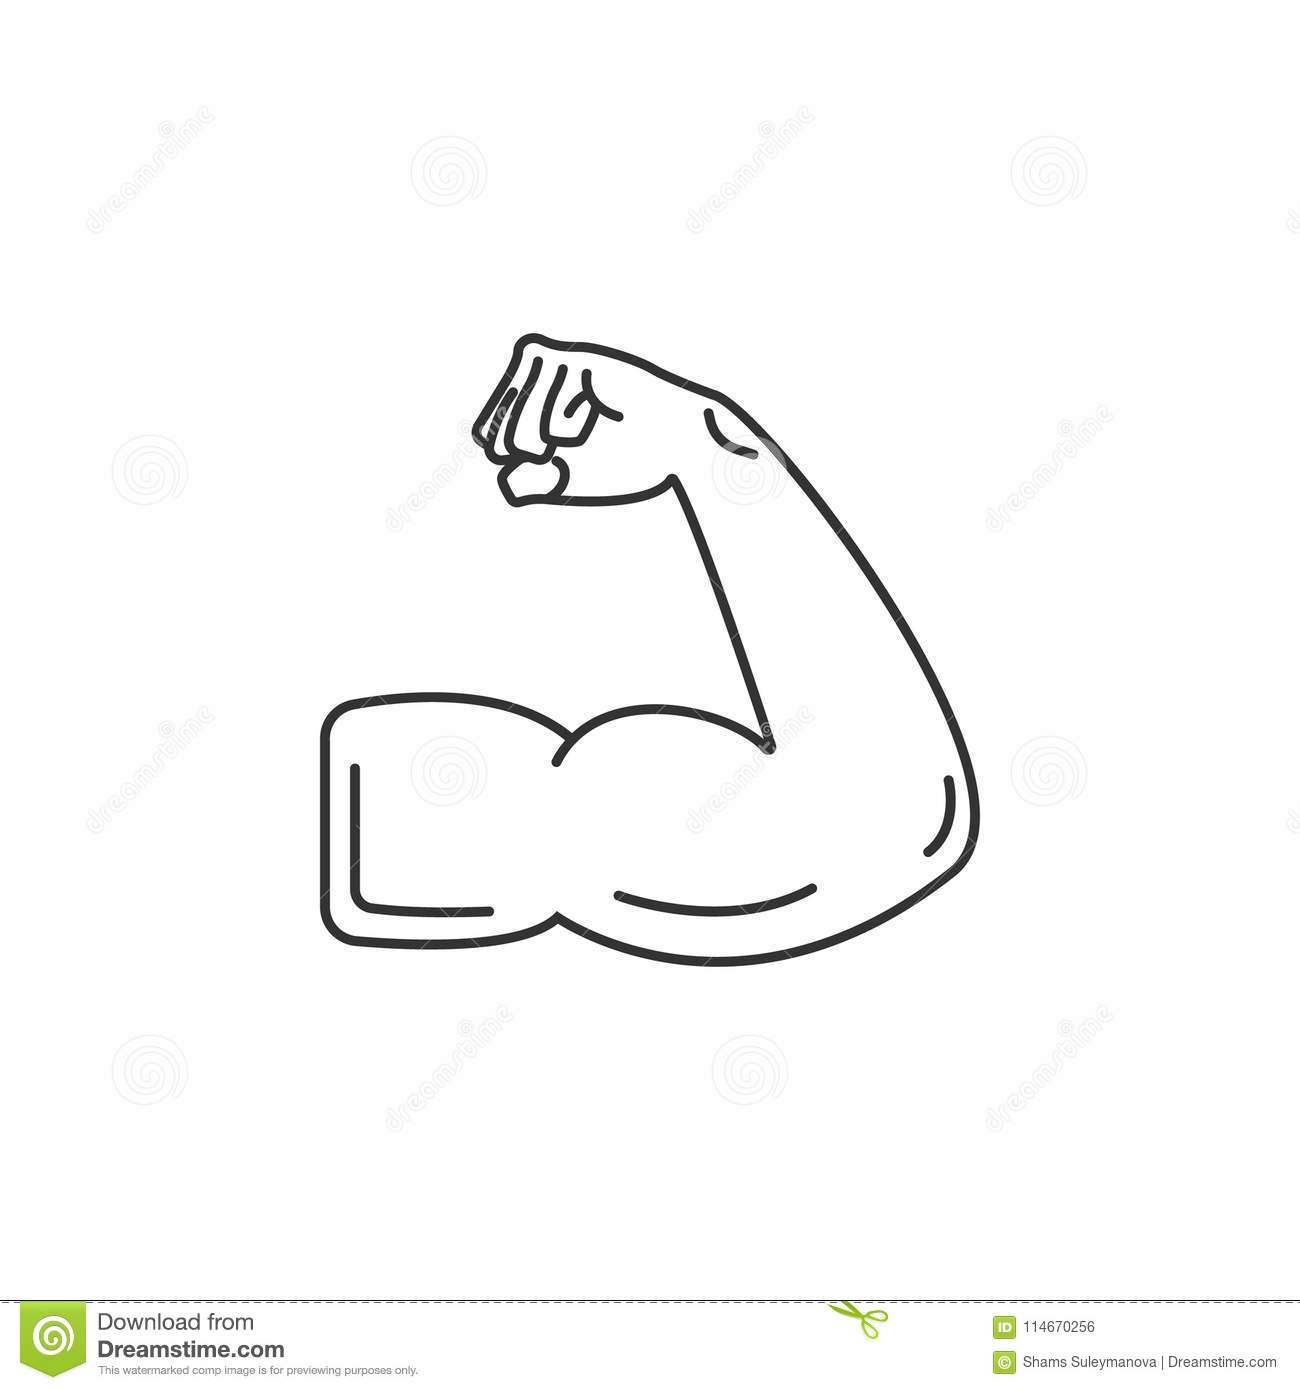 muscle icon simple element illustration muscle symbol design